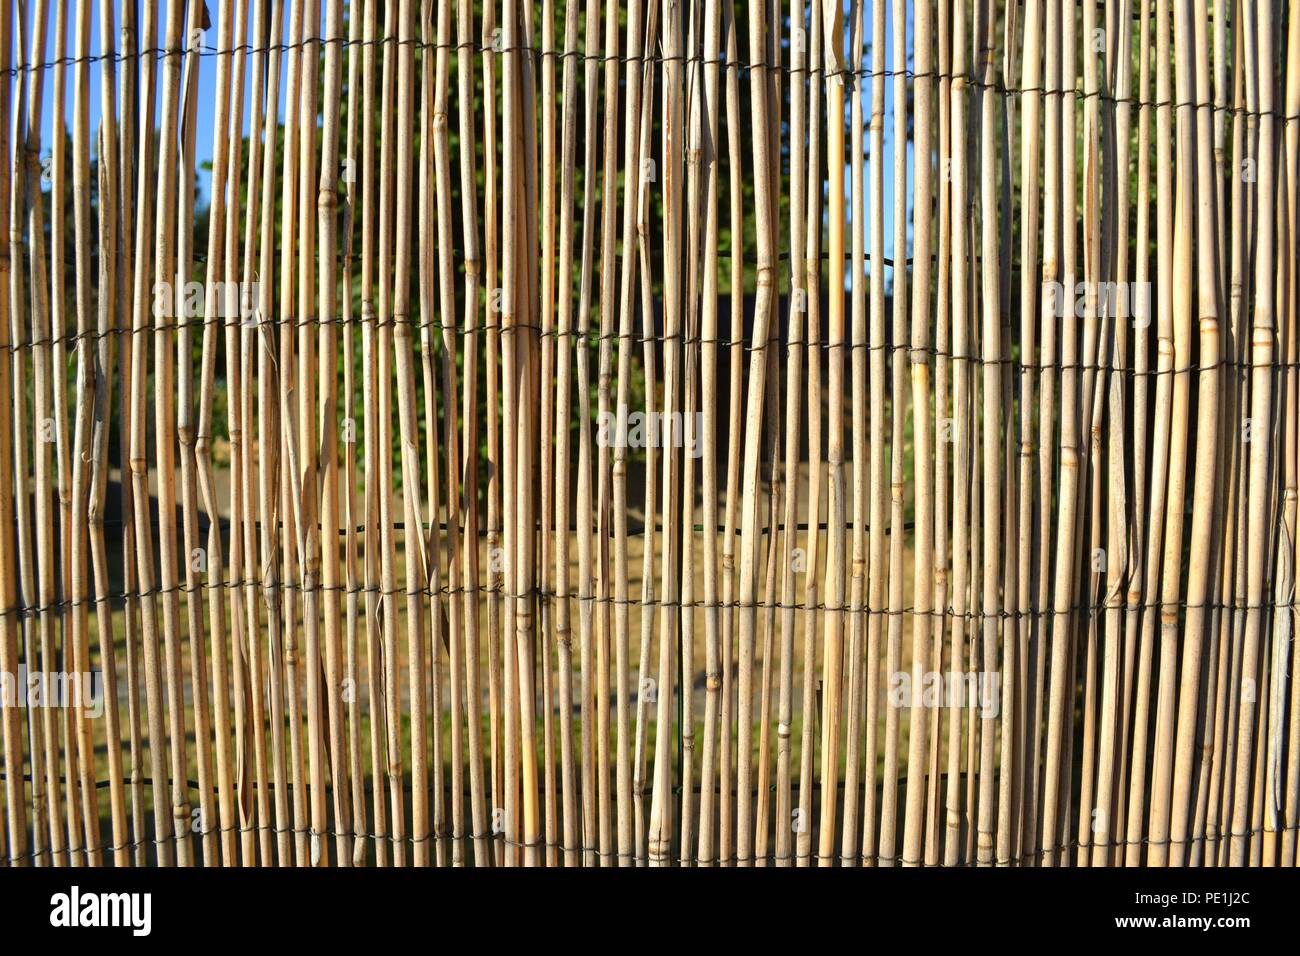 Closeup photograph of a bamboo divider between two suburban gardens. The photograph was taken on a sunny day. - Stock Image